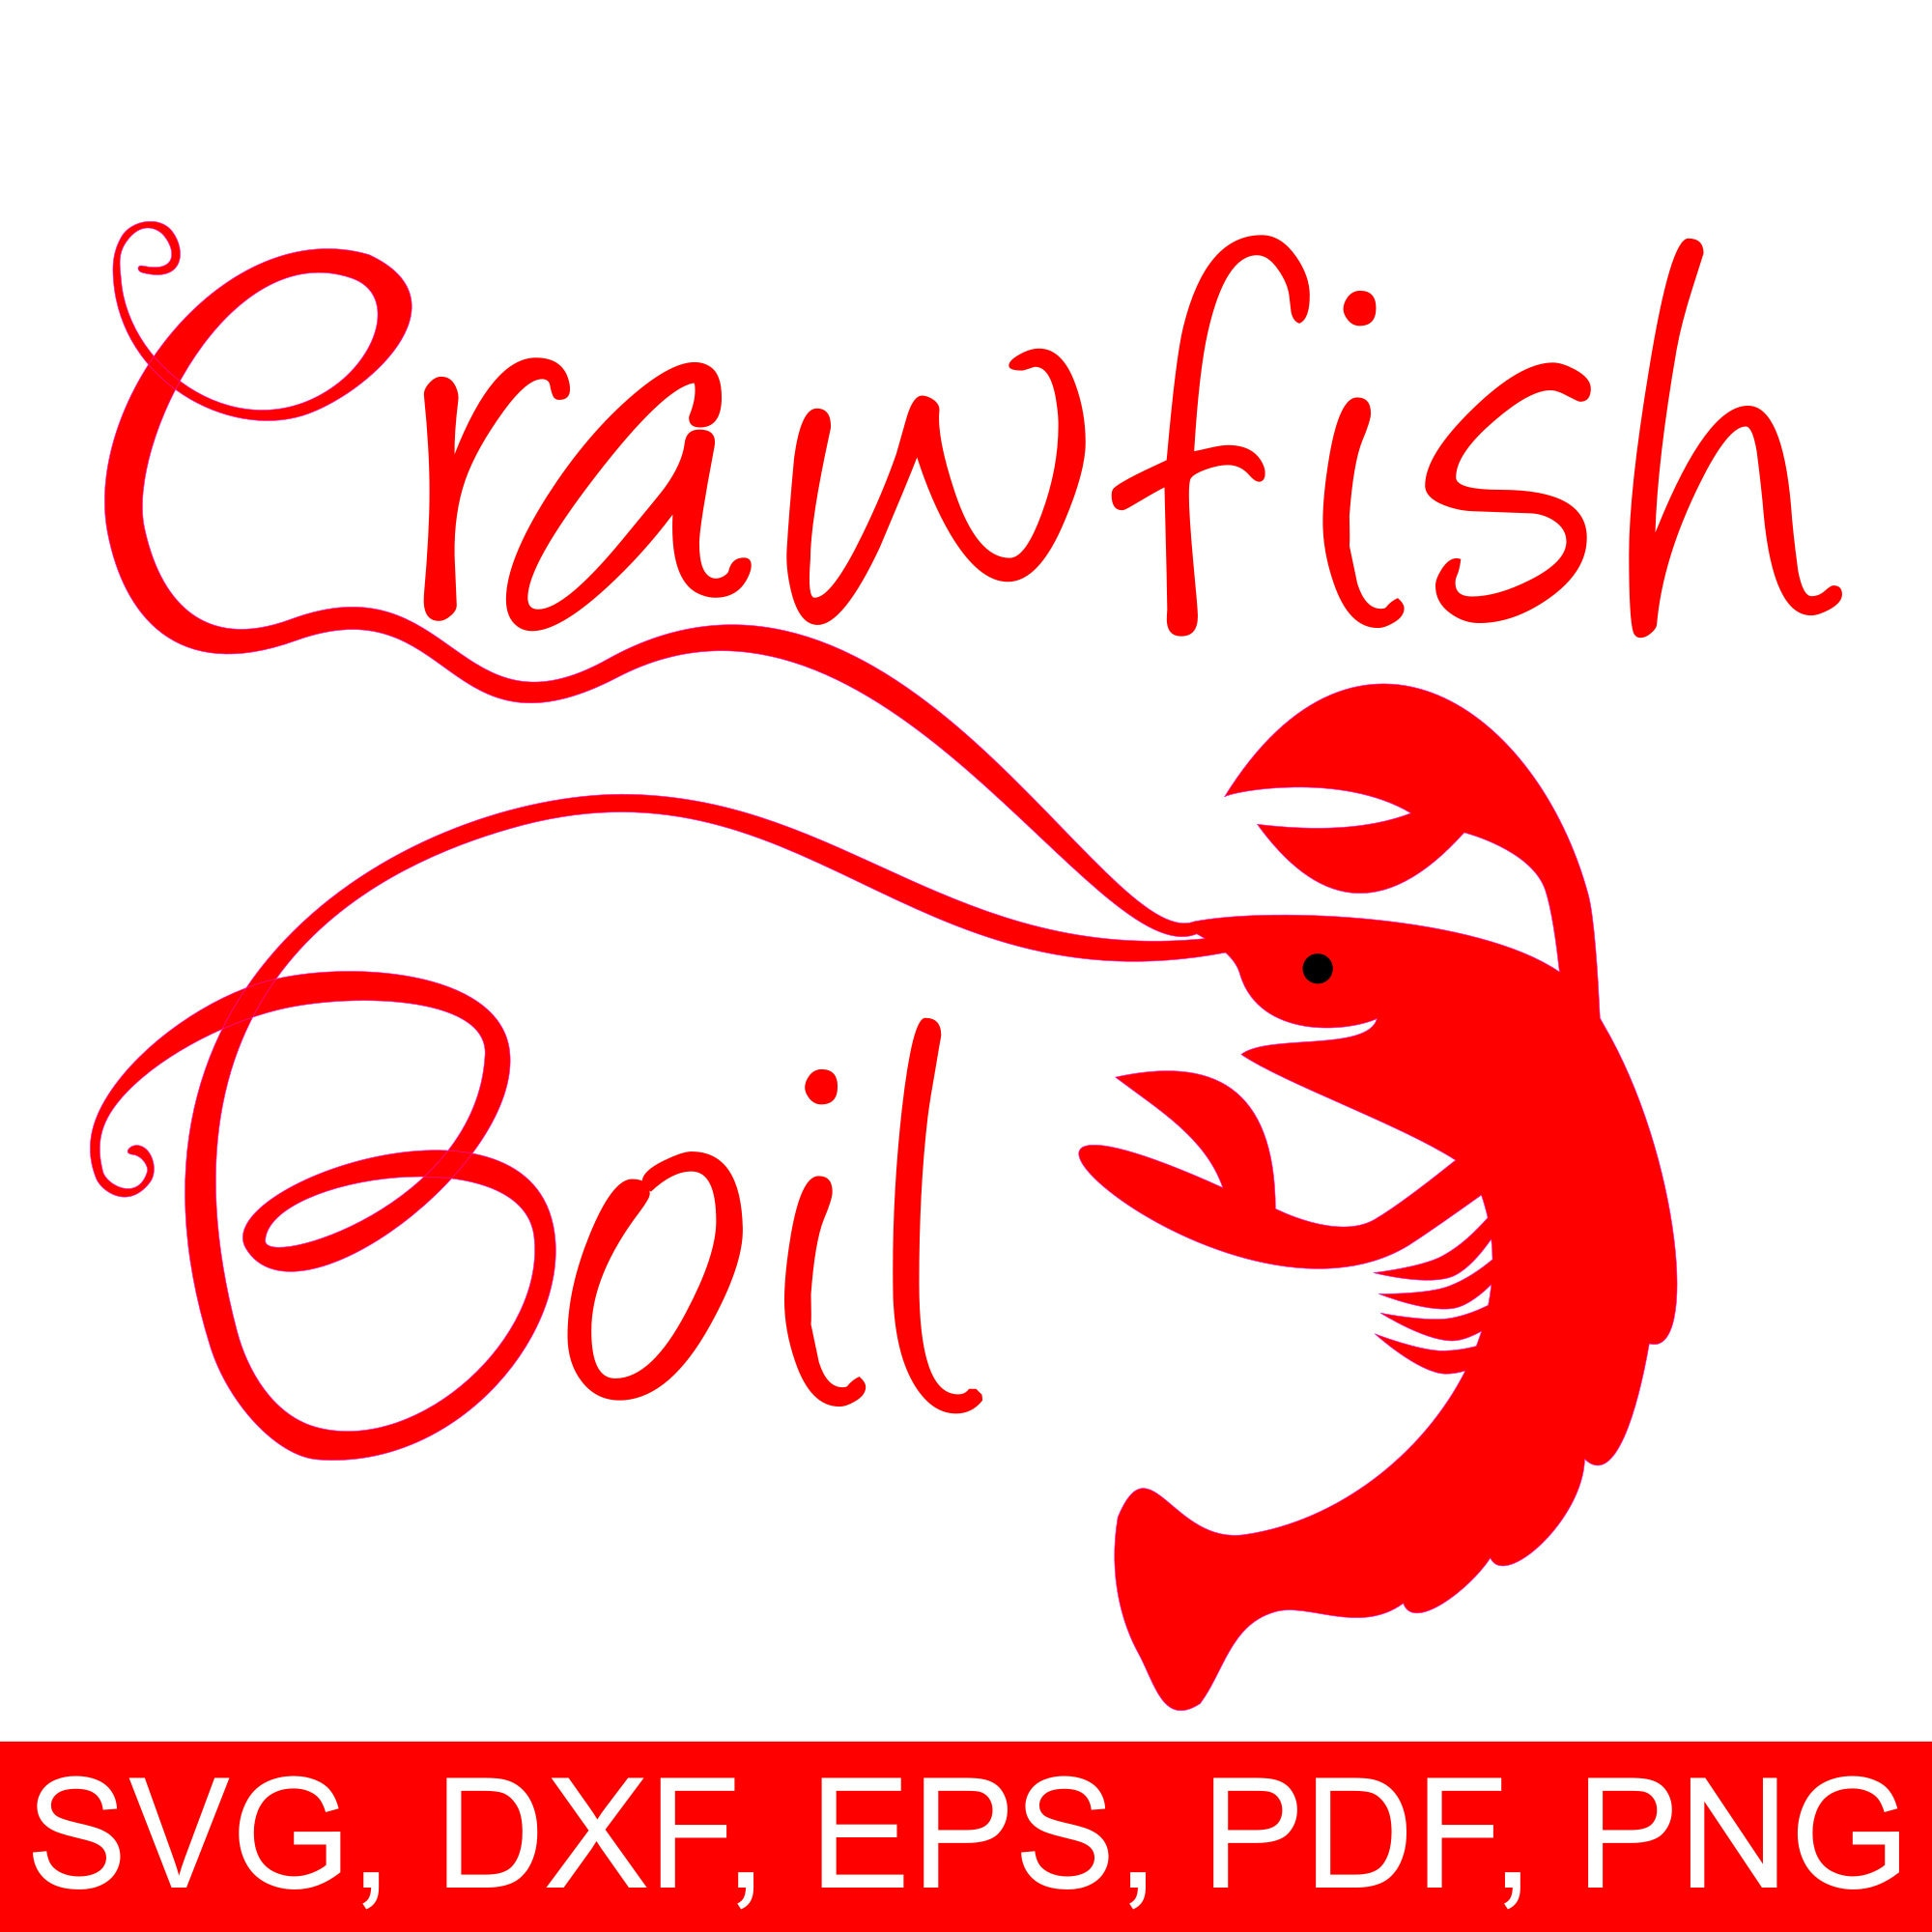 image relating to Crawfish Boil Invitations Free Printable referred to as Crawfish Boil SVG record and Printable Crawfish Boil